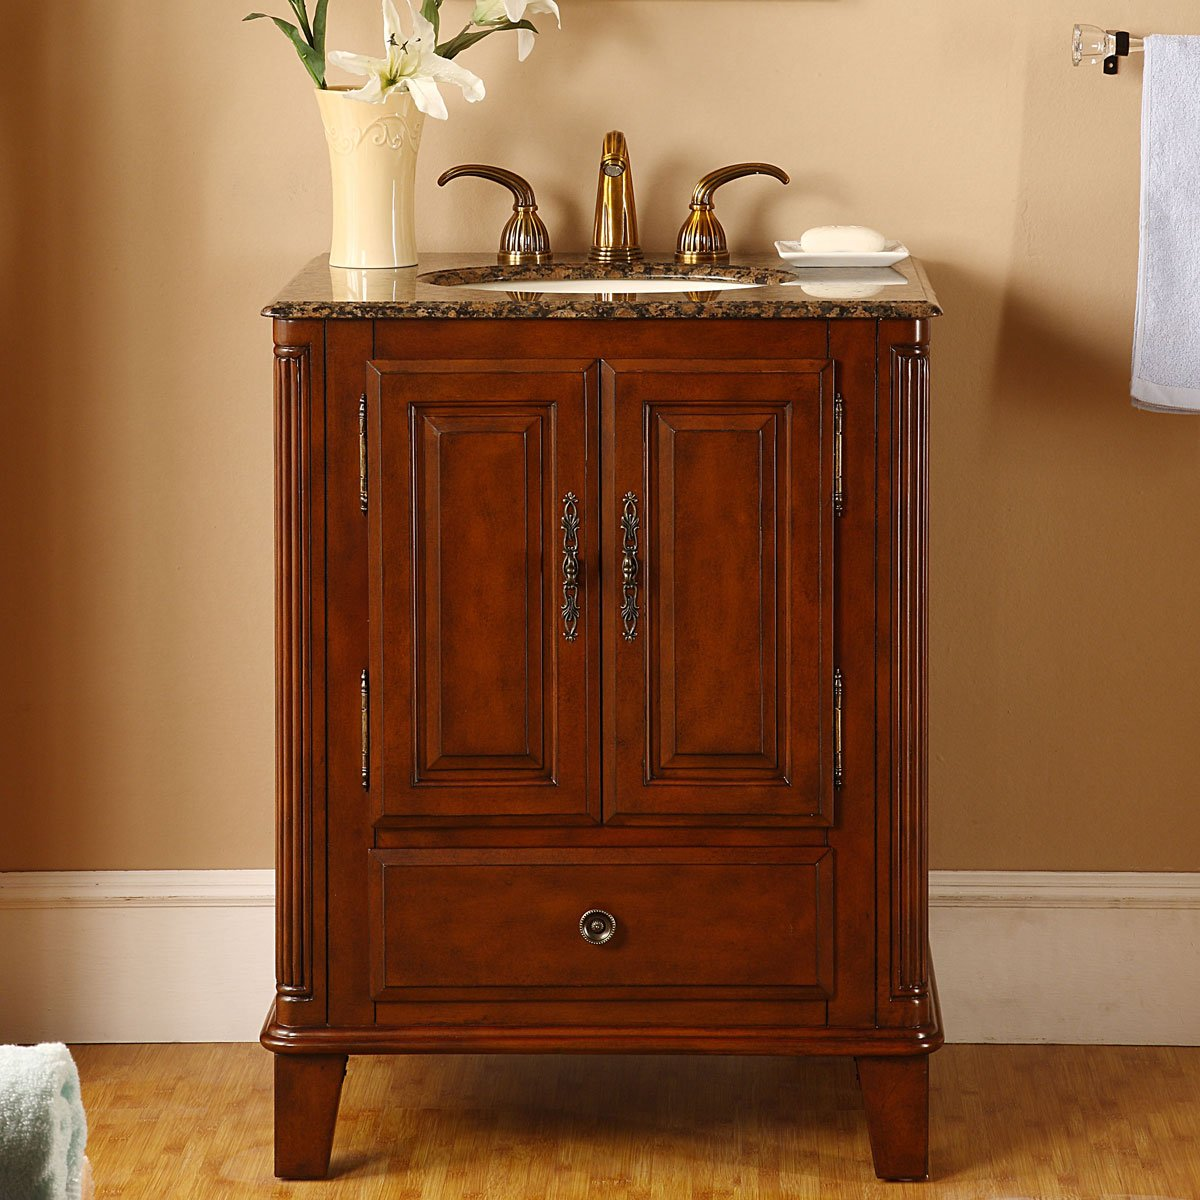 Silkroad Exclusive Single Sink Bathroom Vanity with Special Walnut Finish Cabinet, 28-Inch